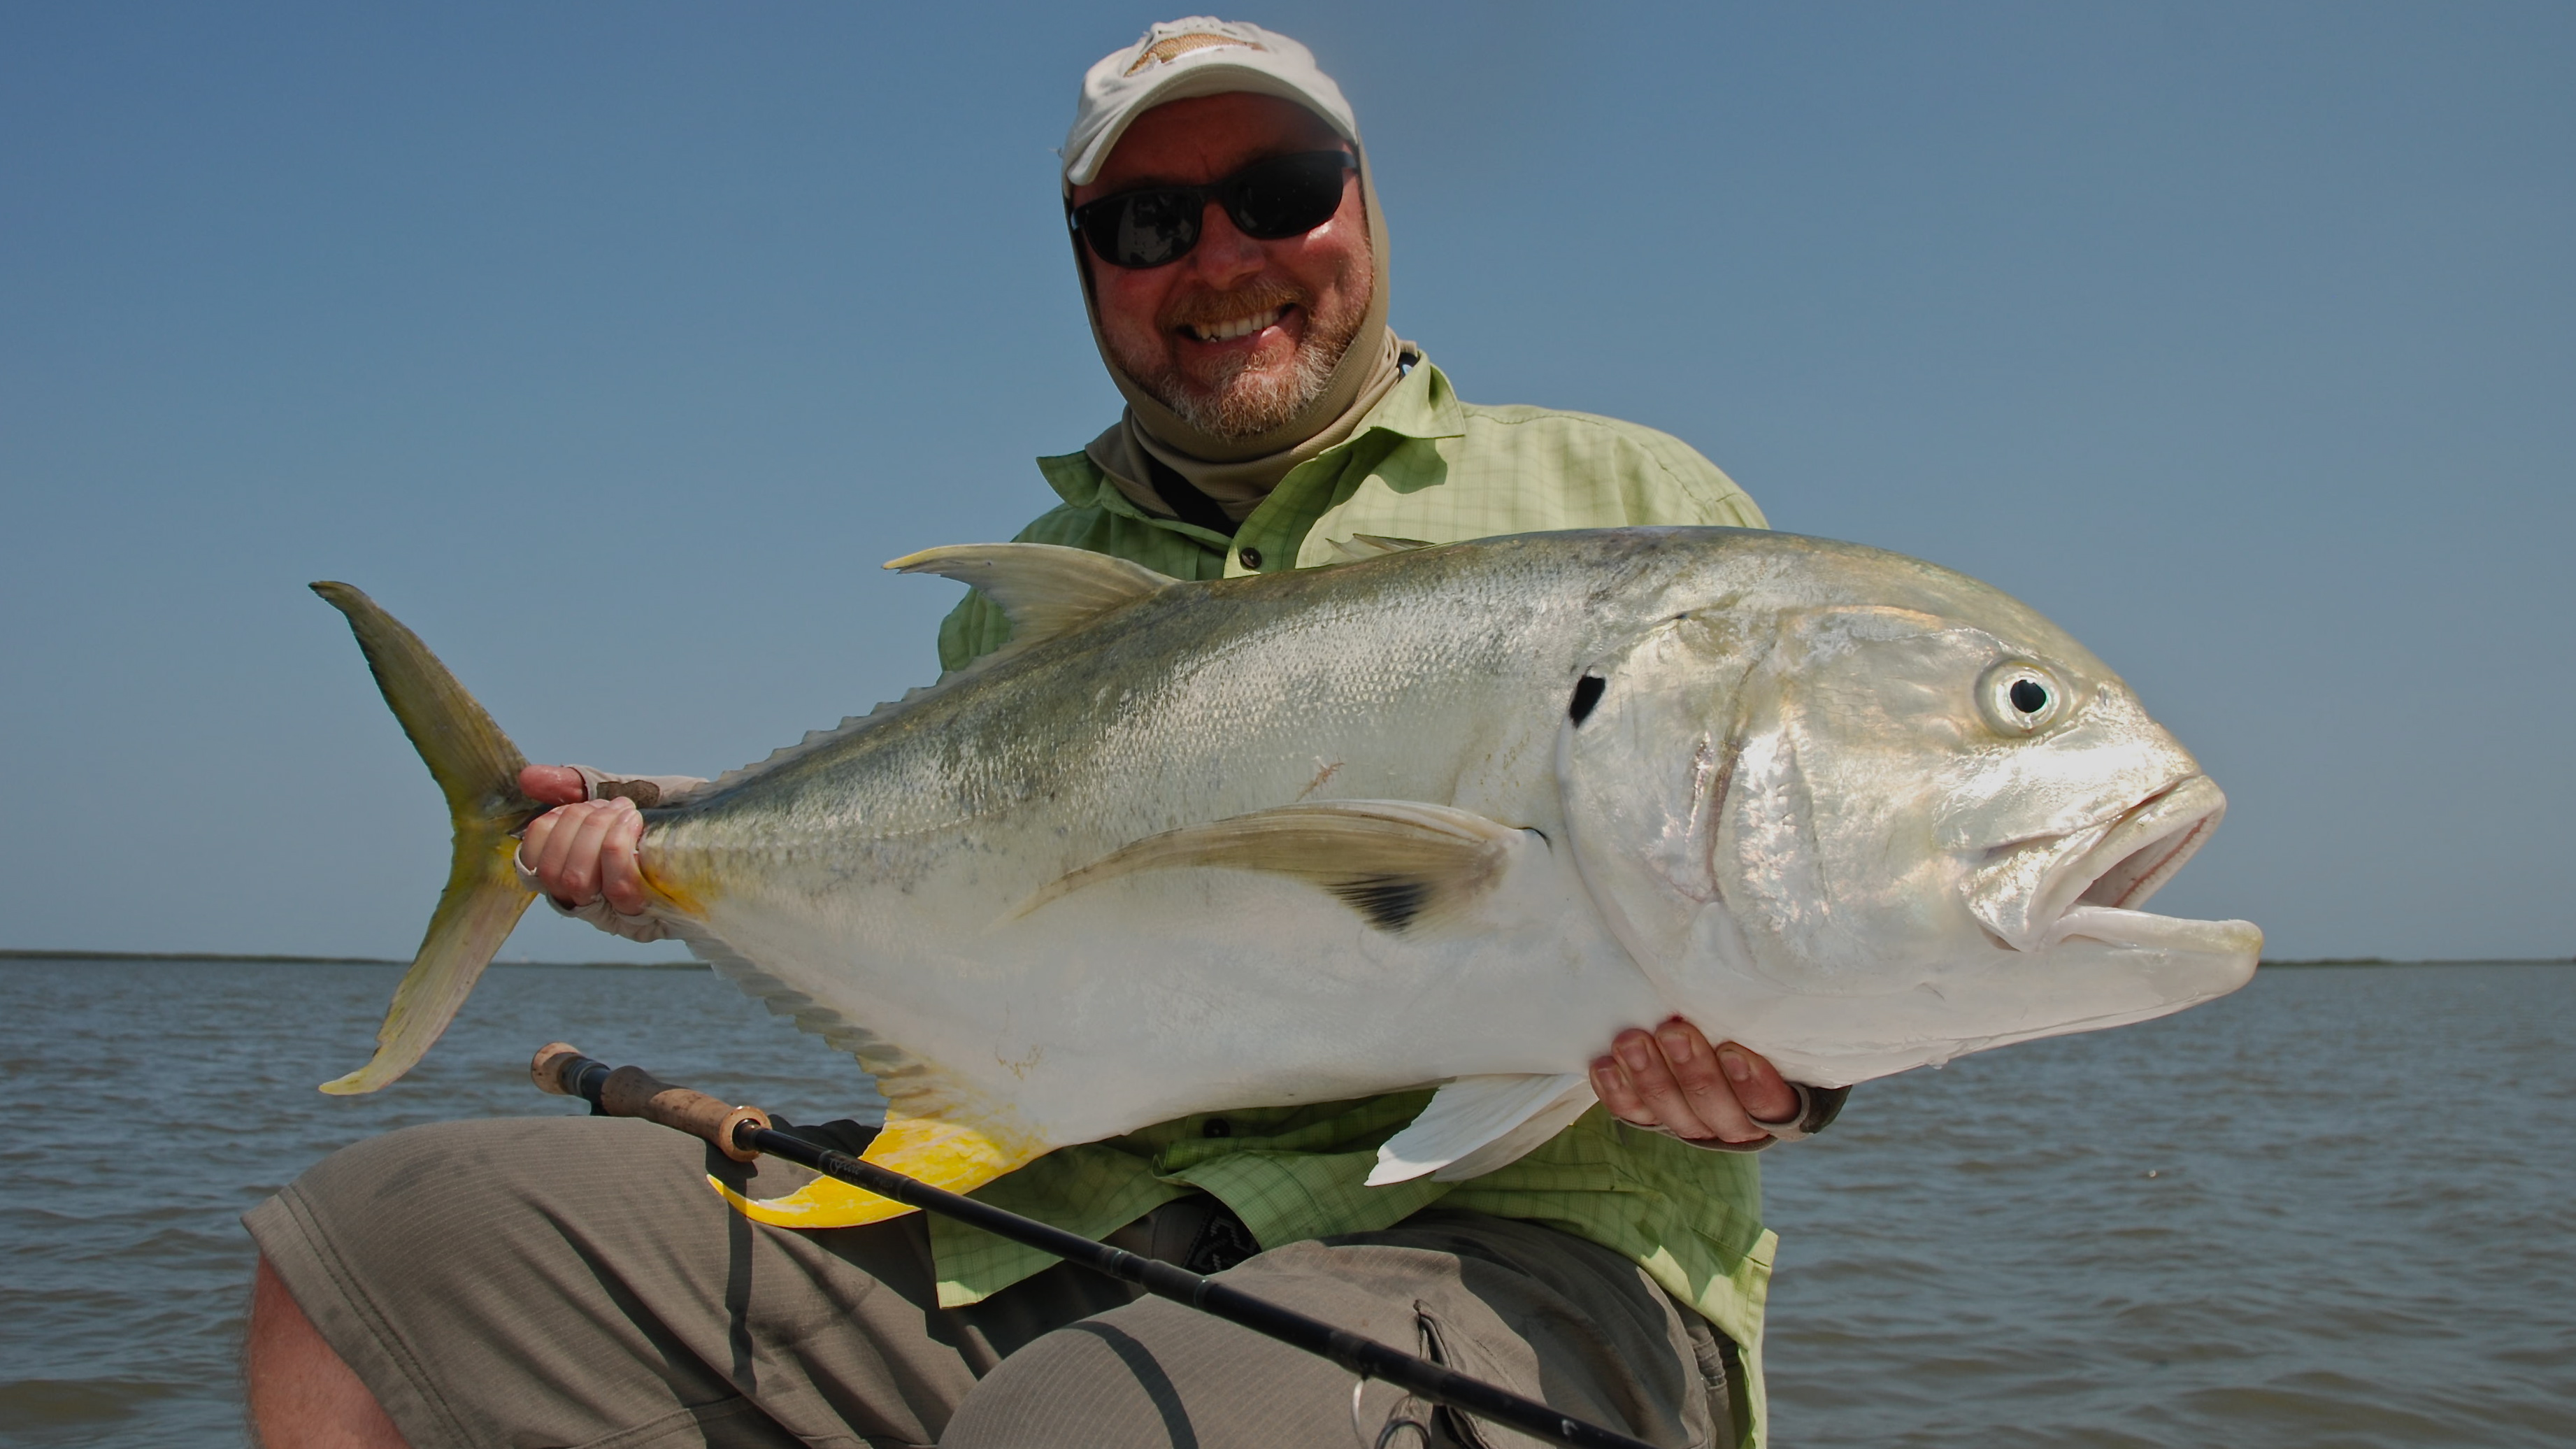 Fly fishing for jacks in louisiana shallow south for What is a jack fish